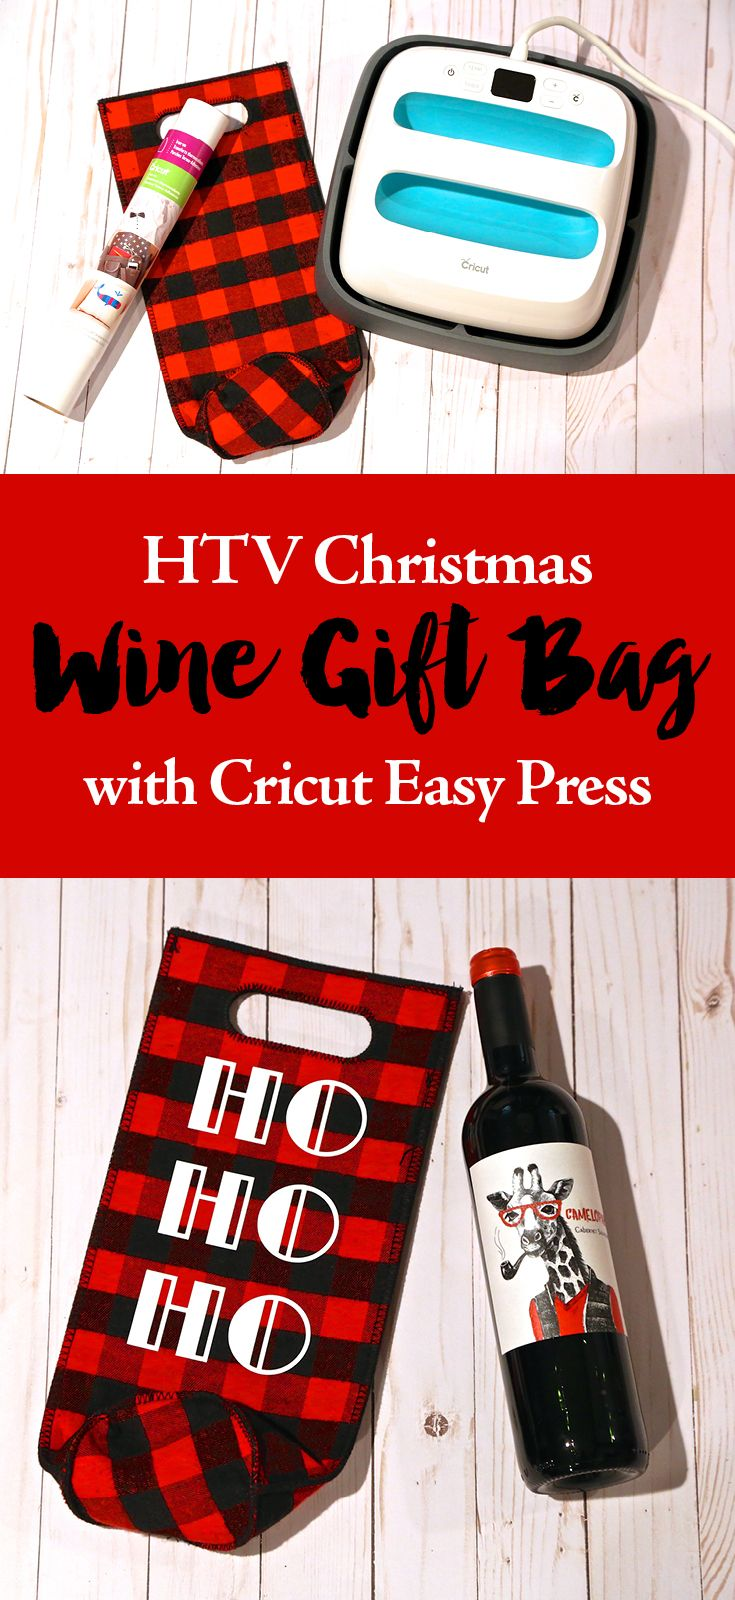 Diy Htv Christmas Wine Gift Bag Made With A Cricut Easy Press Easy Under 15 Minute Tutorial On How To Christmas Wine Gift Bag Wine Christmas Gifts Wine Gifts